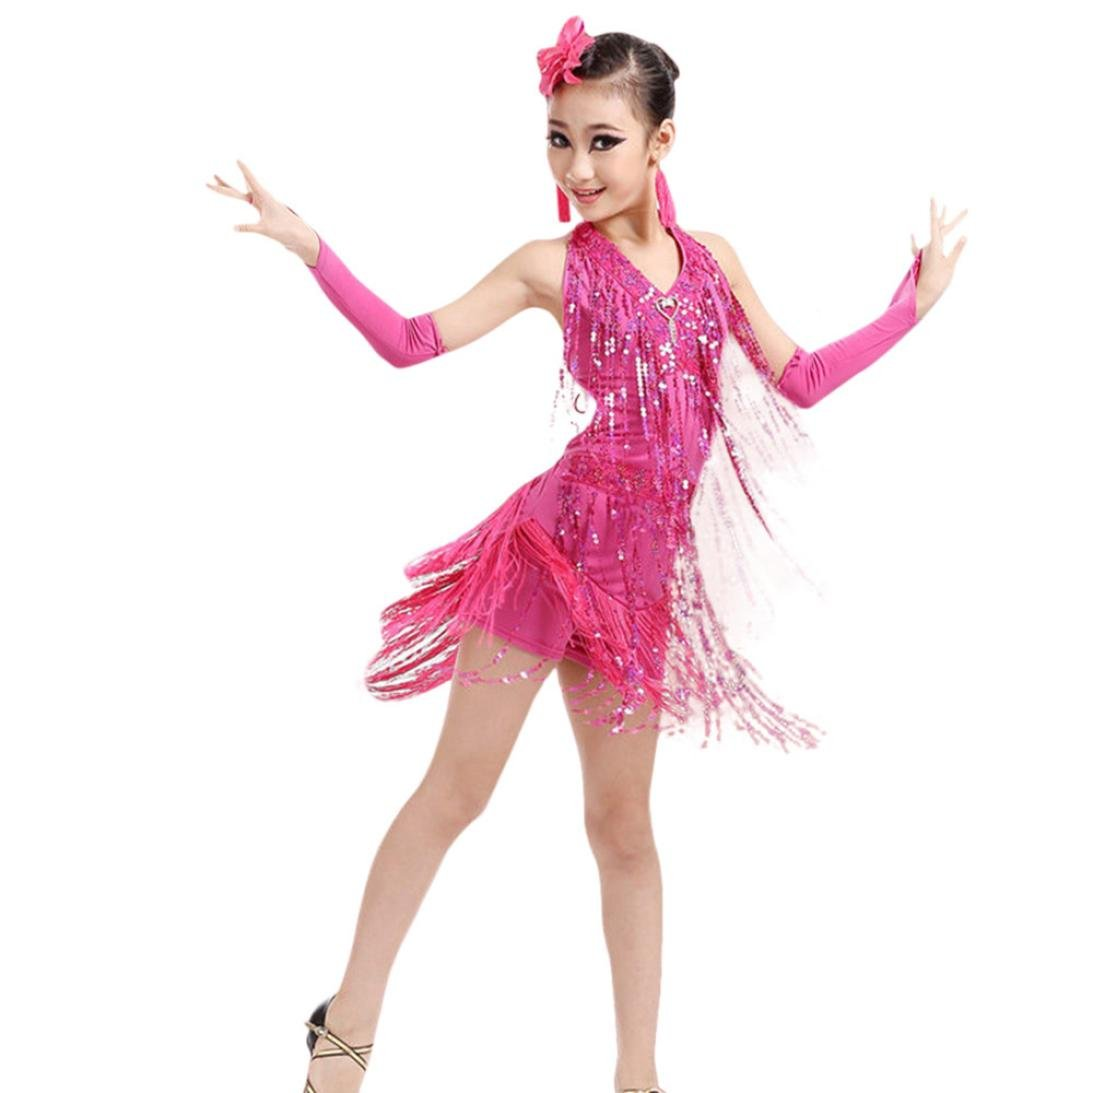 aeb5c2430a KaloryWee Kid s Carnival Costumes Girl s School Show Outfit Latin Dance  Dress  Amazon.co.uk  Sports   Outdoors